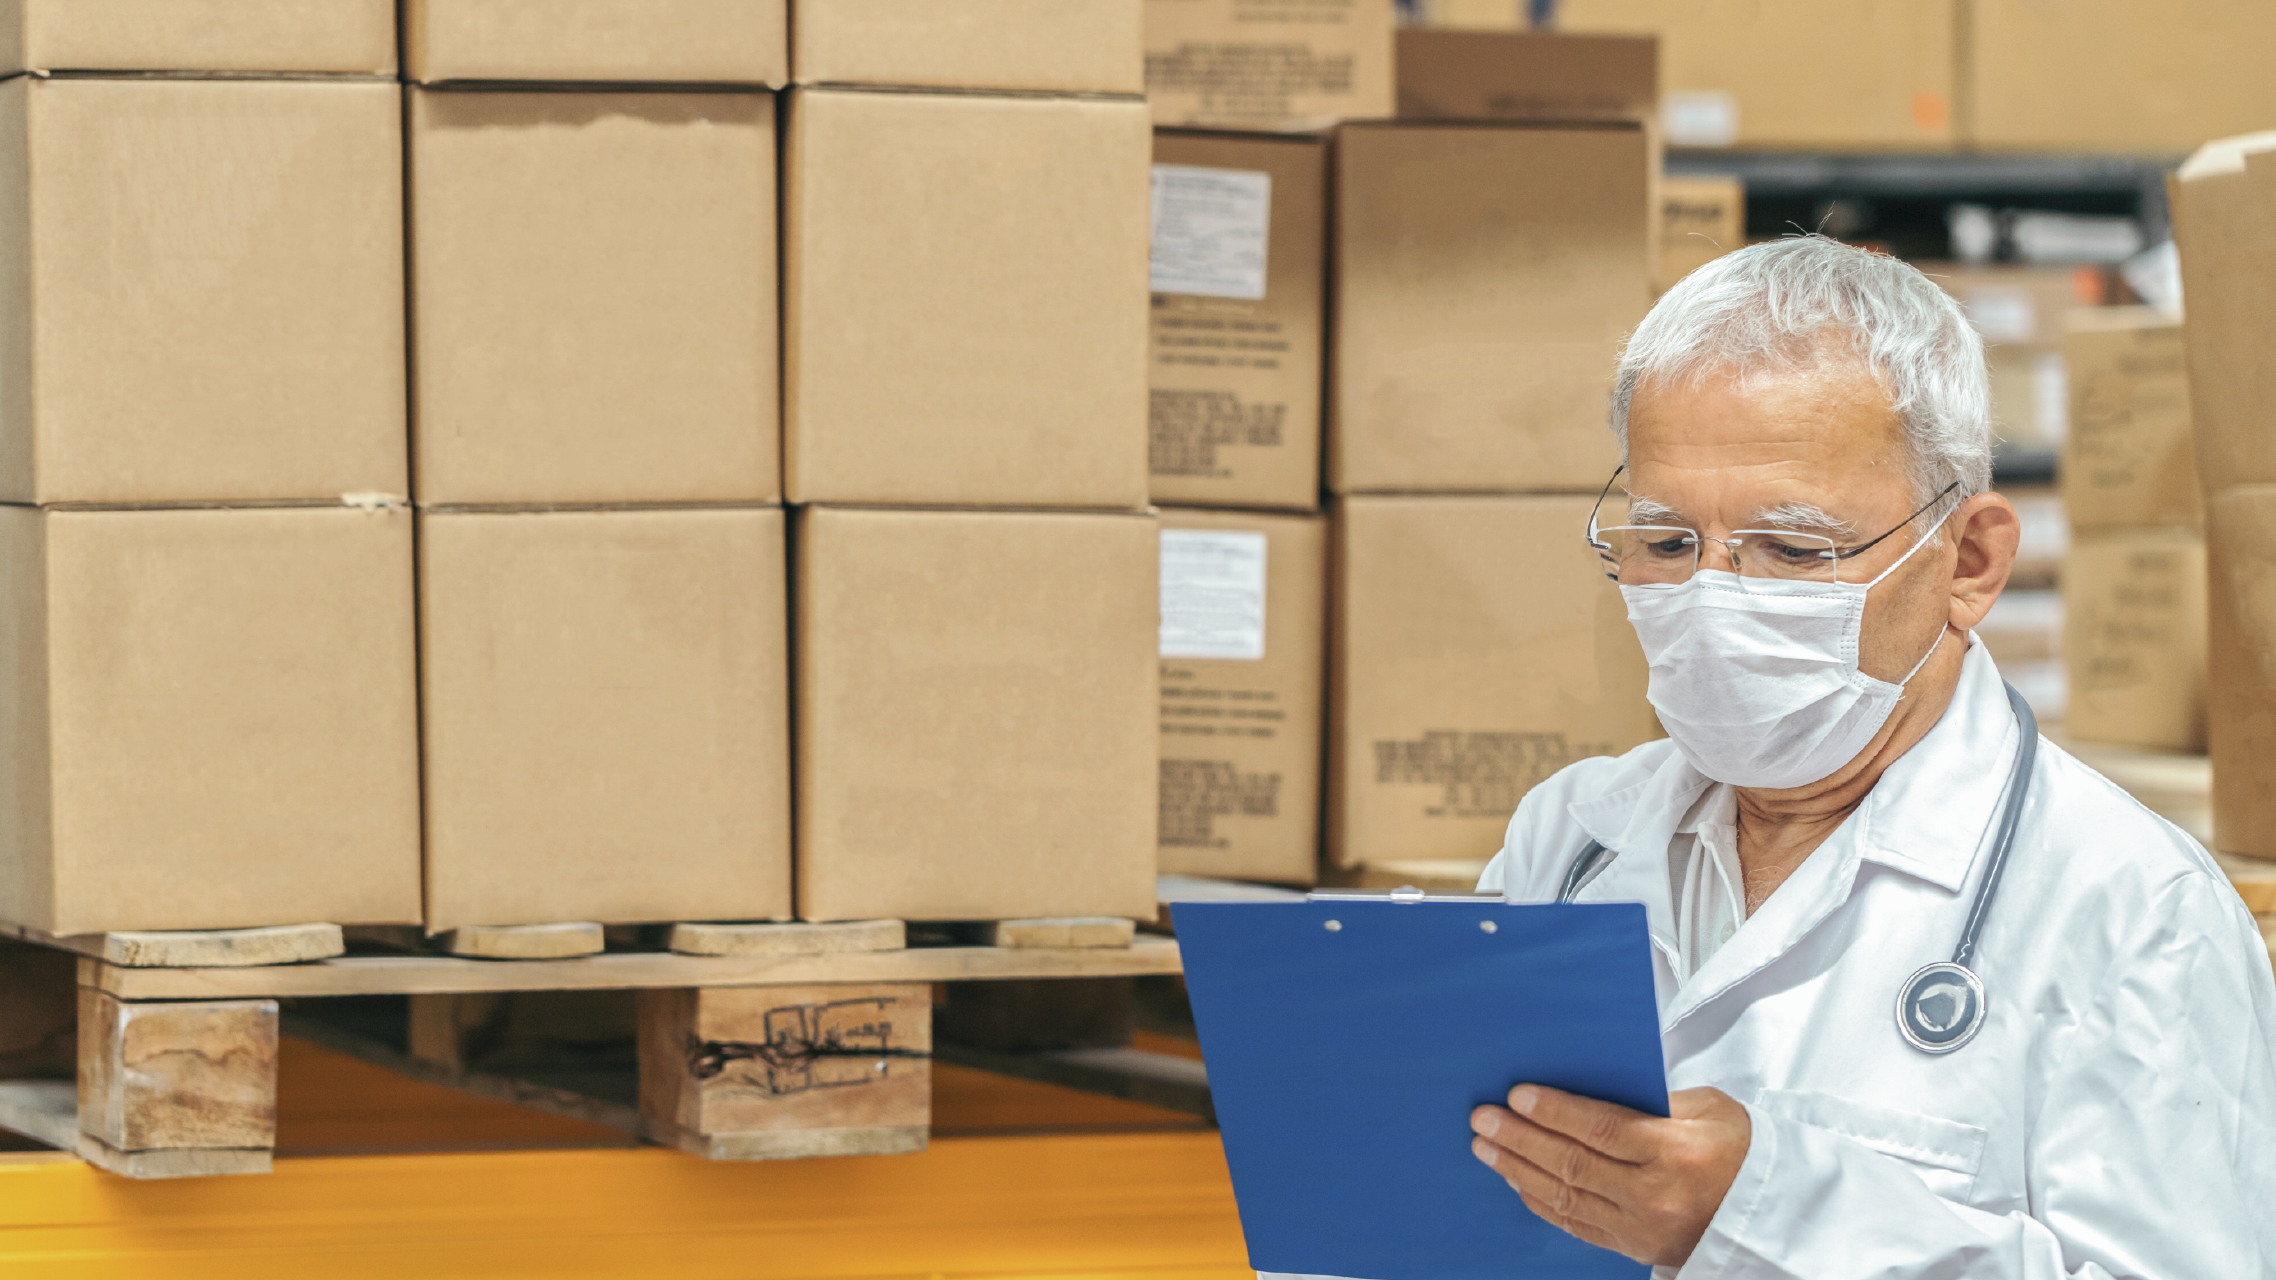 Doctor checking medical supplies in a warehouse